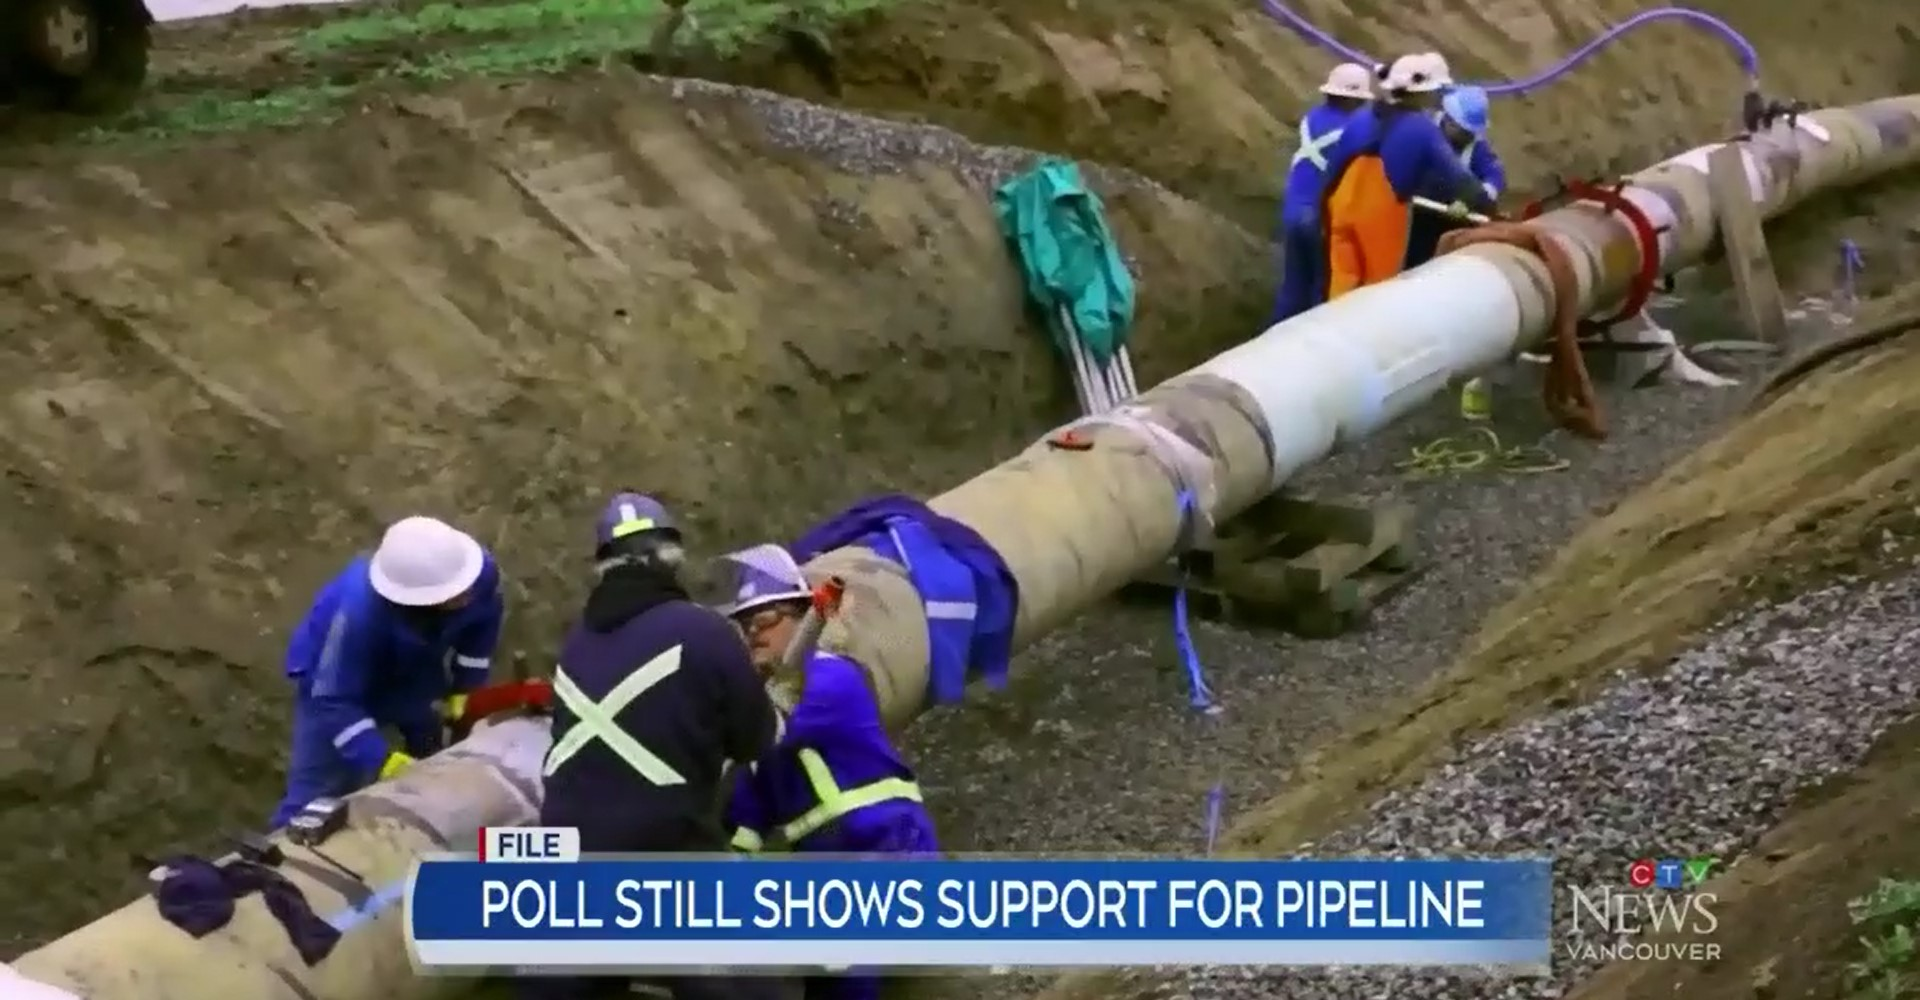 British Columbians are more open to pipelines than ever before. Alberta and B.C. have been at loggerheads with pipeline development in recent years.